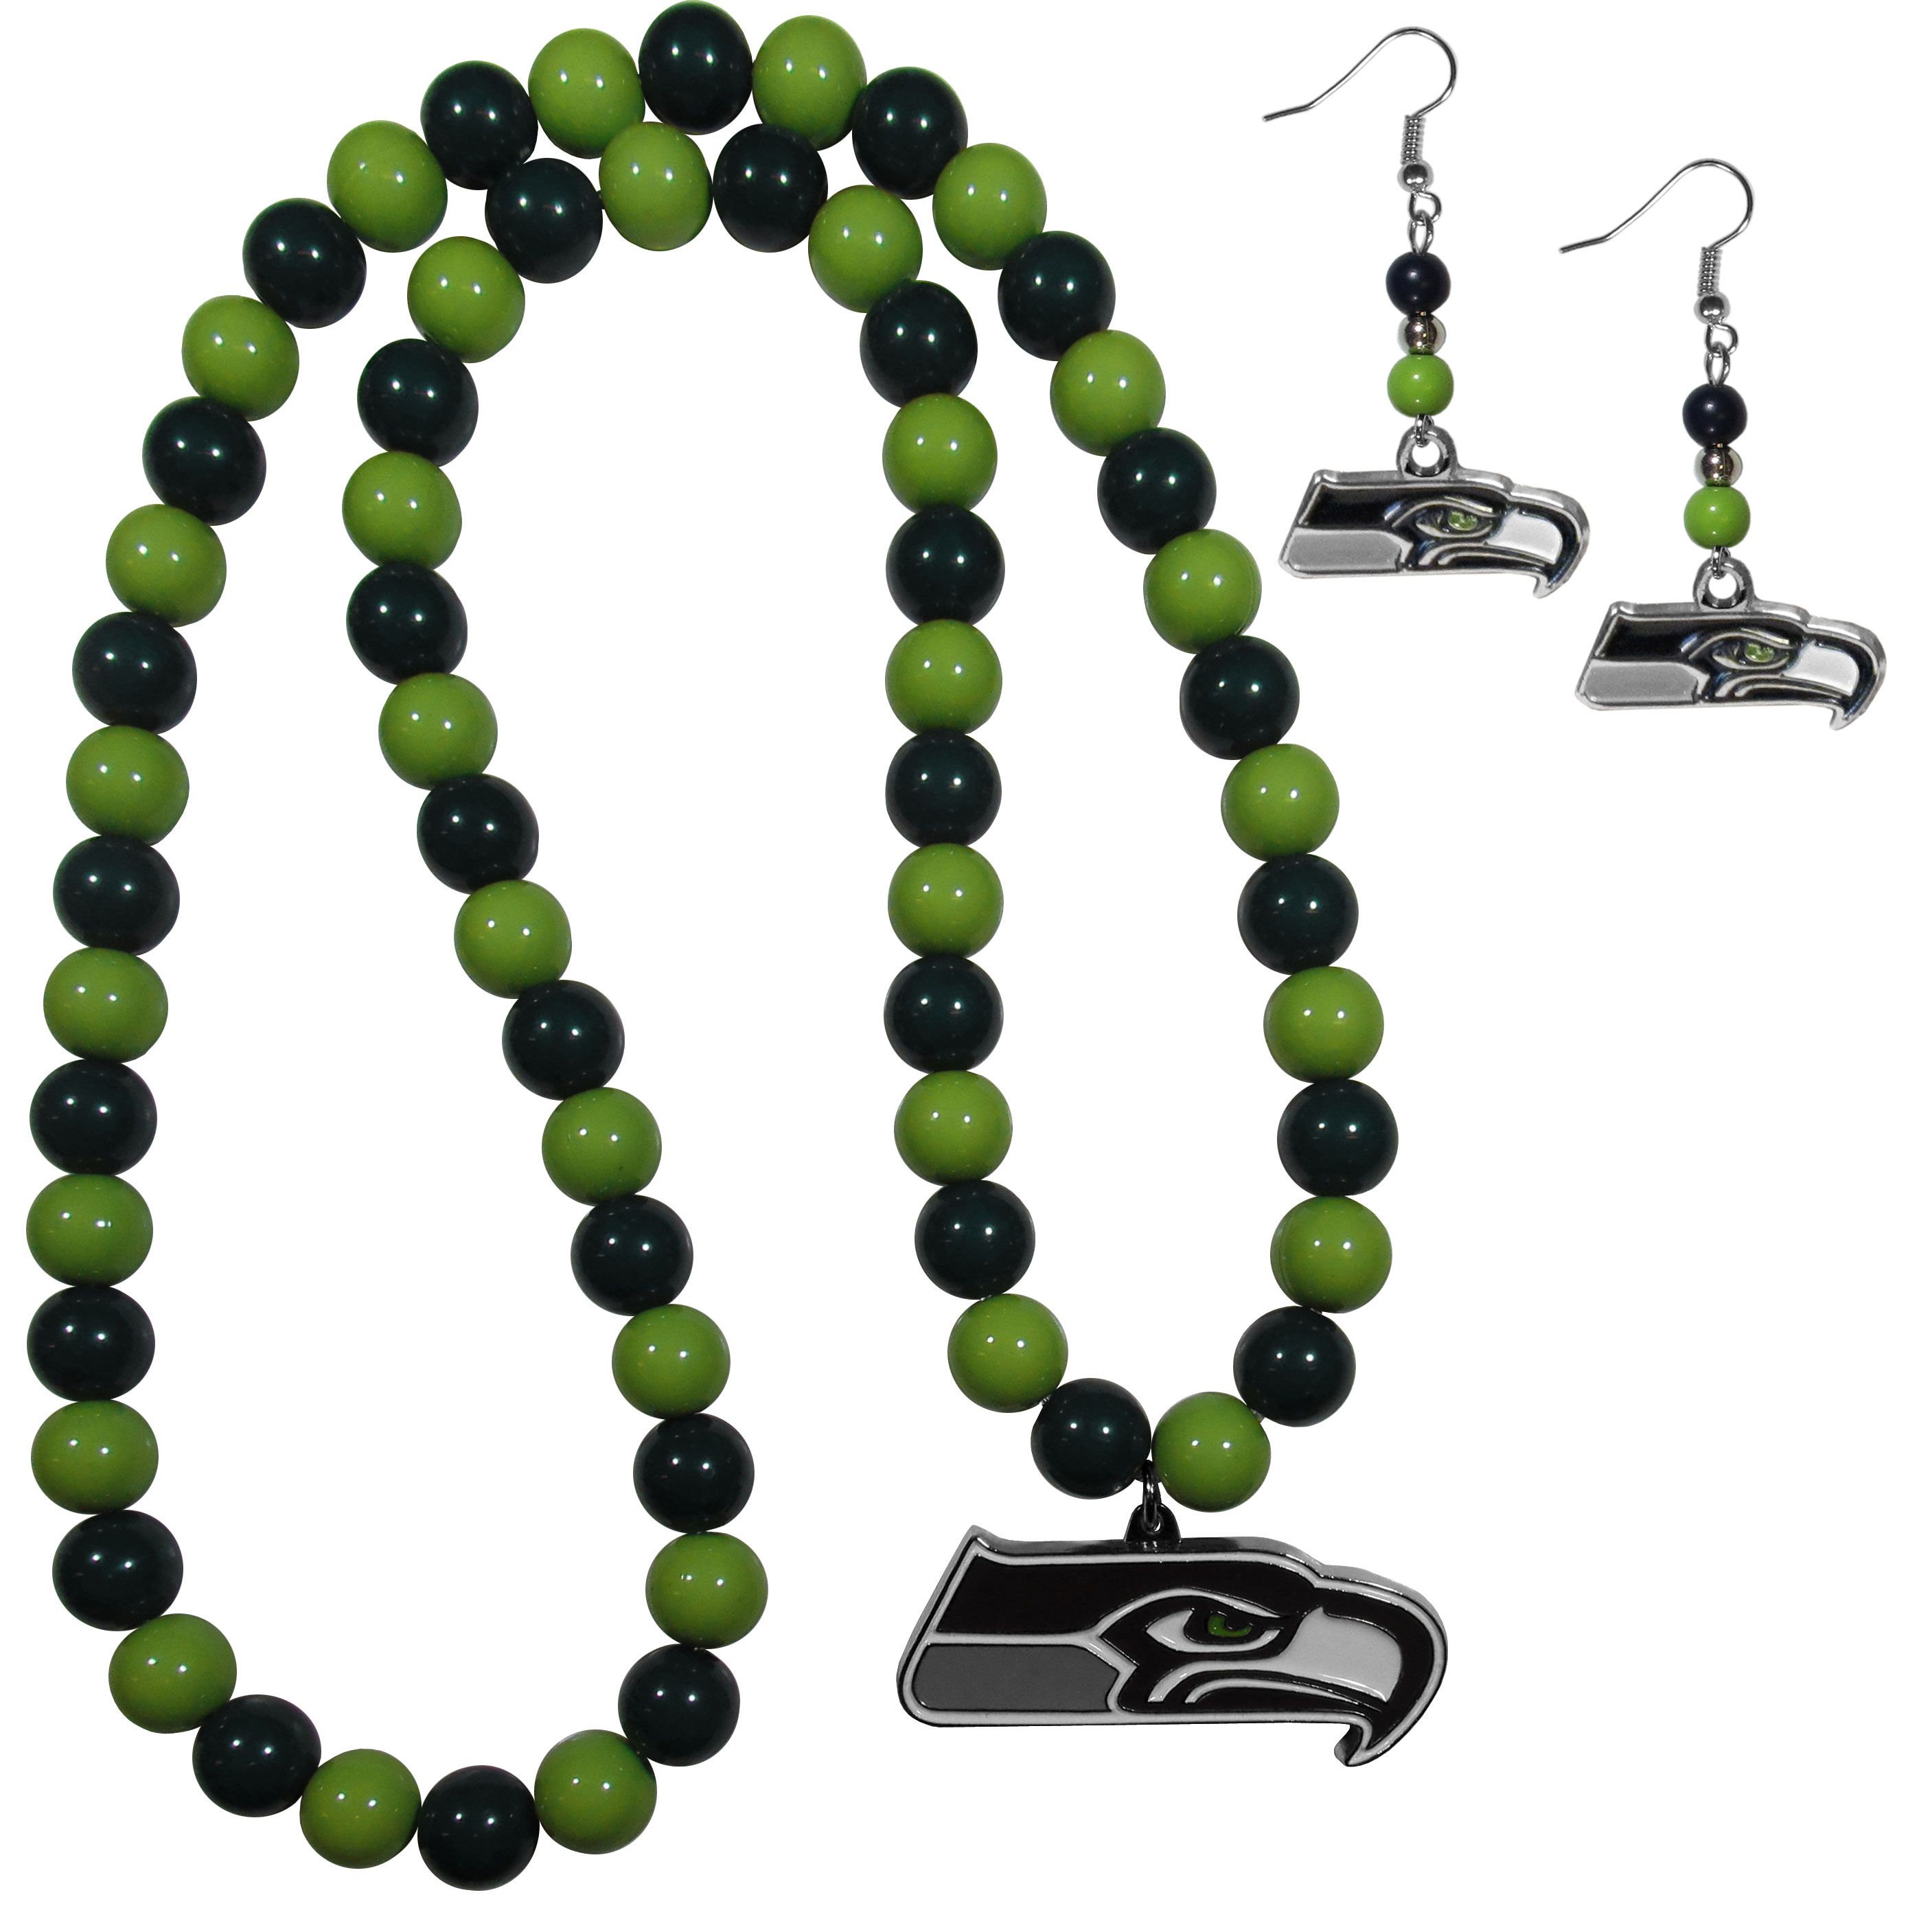 Seattle Seahawks Fan Bead Earrings and Necklace Set - These fun and colorful Seattle Seahawks fan bead jewelry pieces are an eyecatching way to show off your team spirit. The earrings feature hypoallergenic, nickel free fishhook post and 2 team colored beads with a beautifully carved team charm to finish this attractive dangle look. The mathcing bracelet has alternating team colored beads on a stretch cord and features a matching team charm.